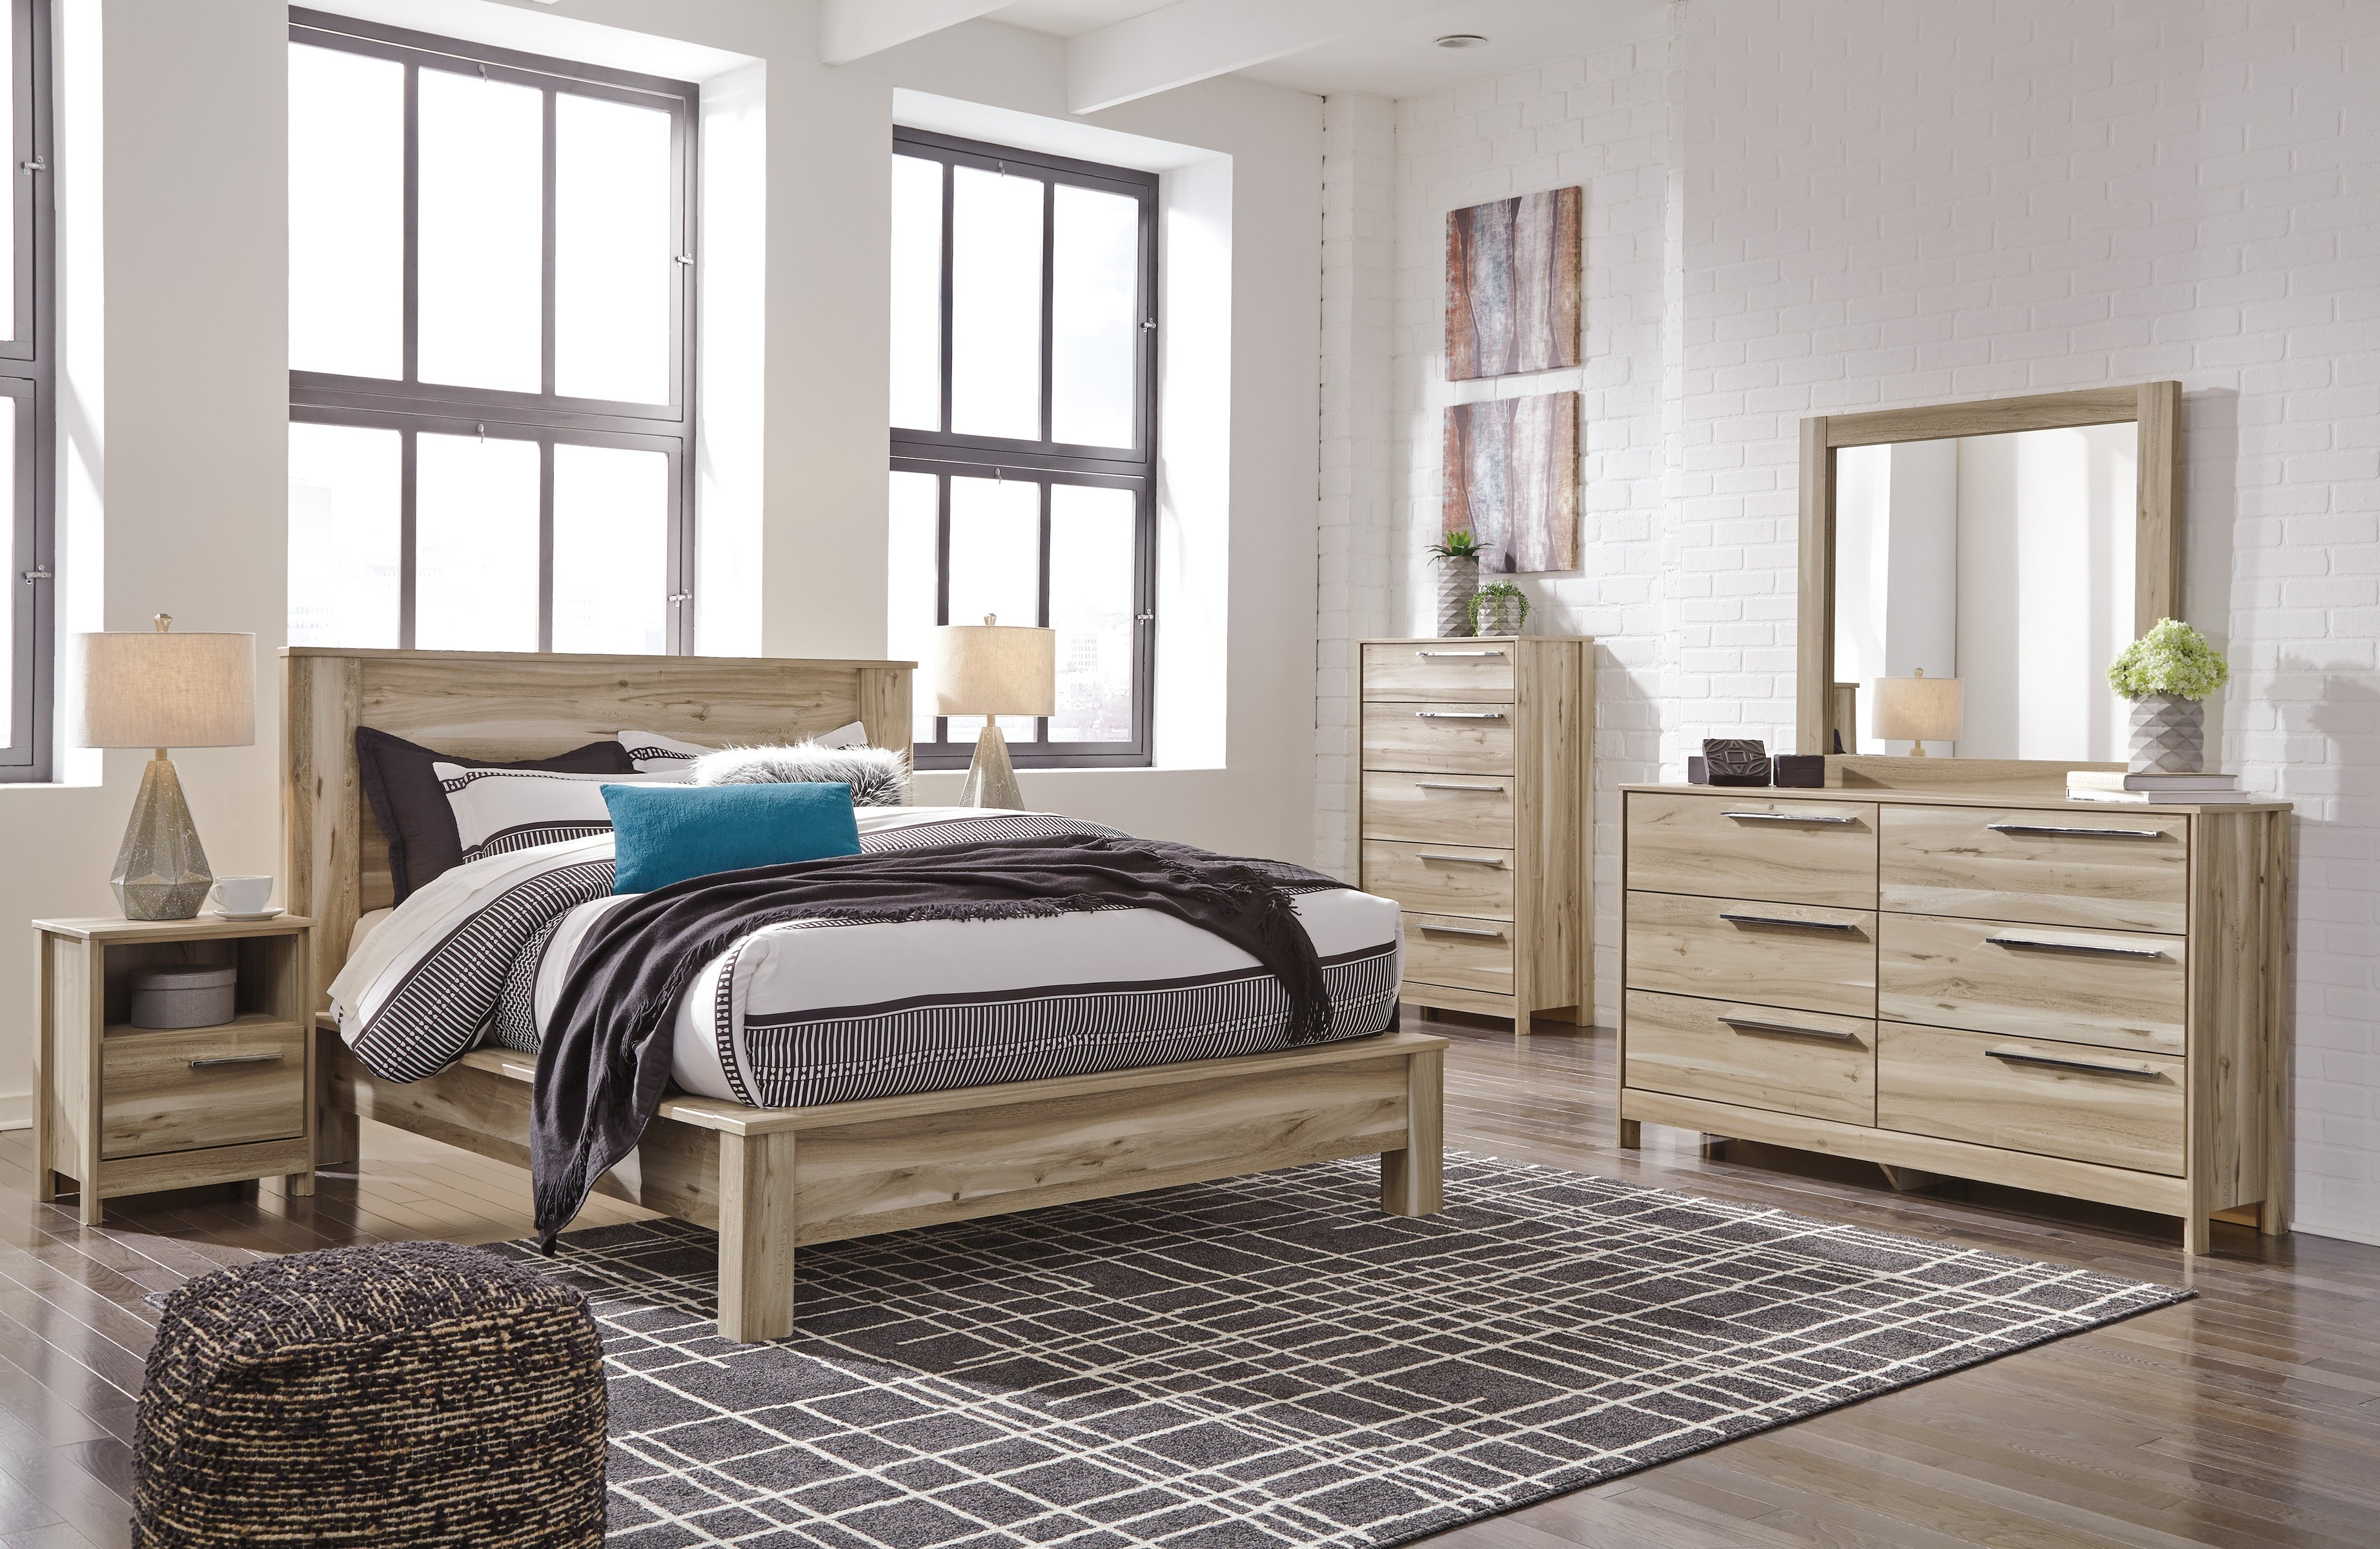 B230 Kianni Bedroom Set